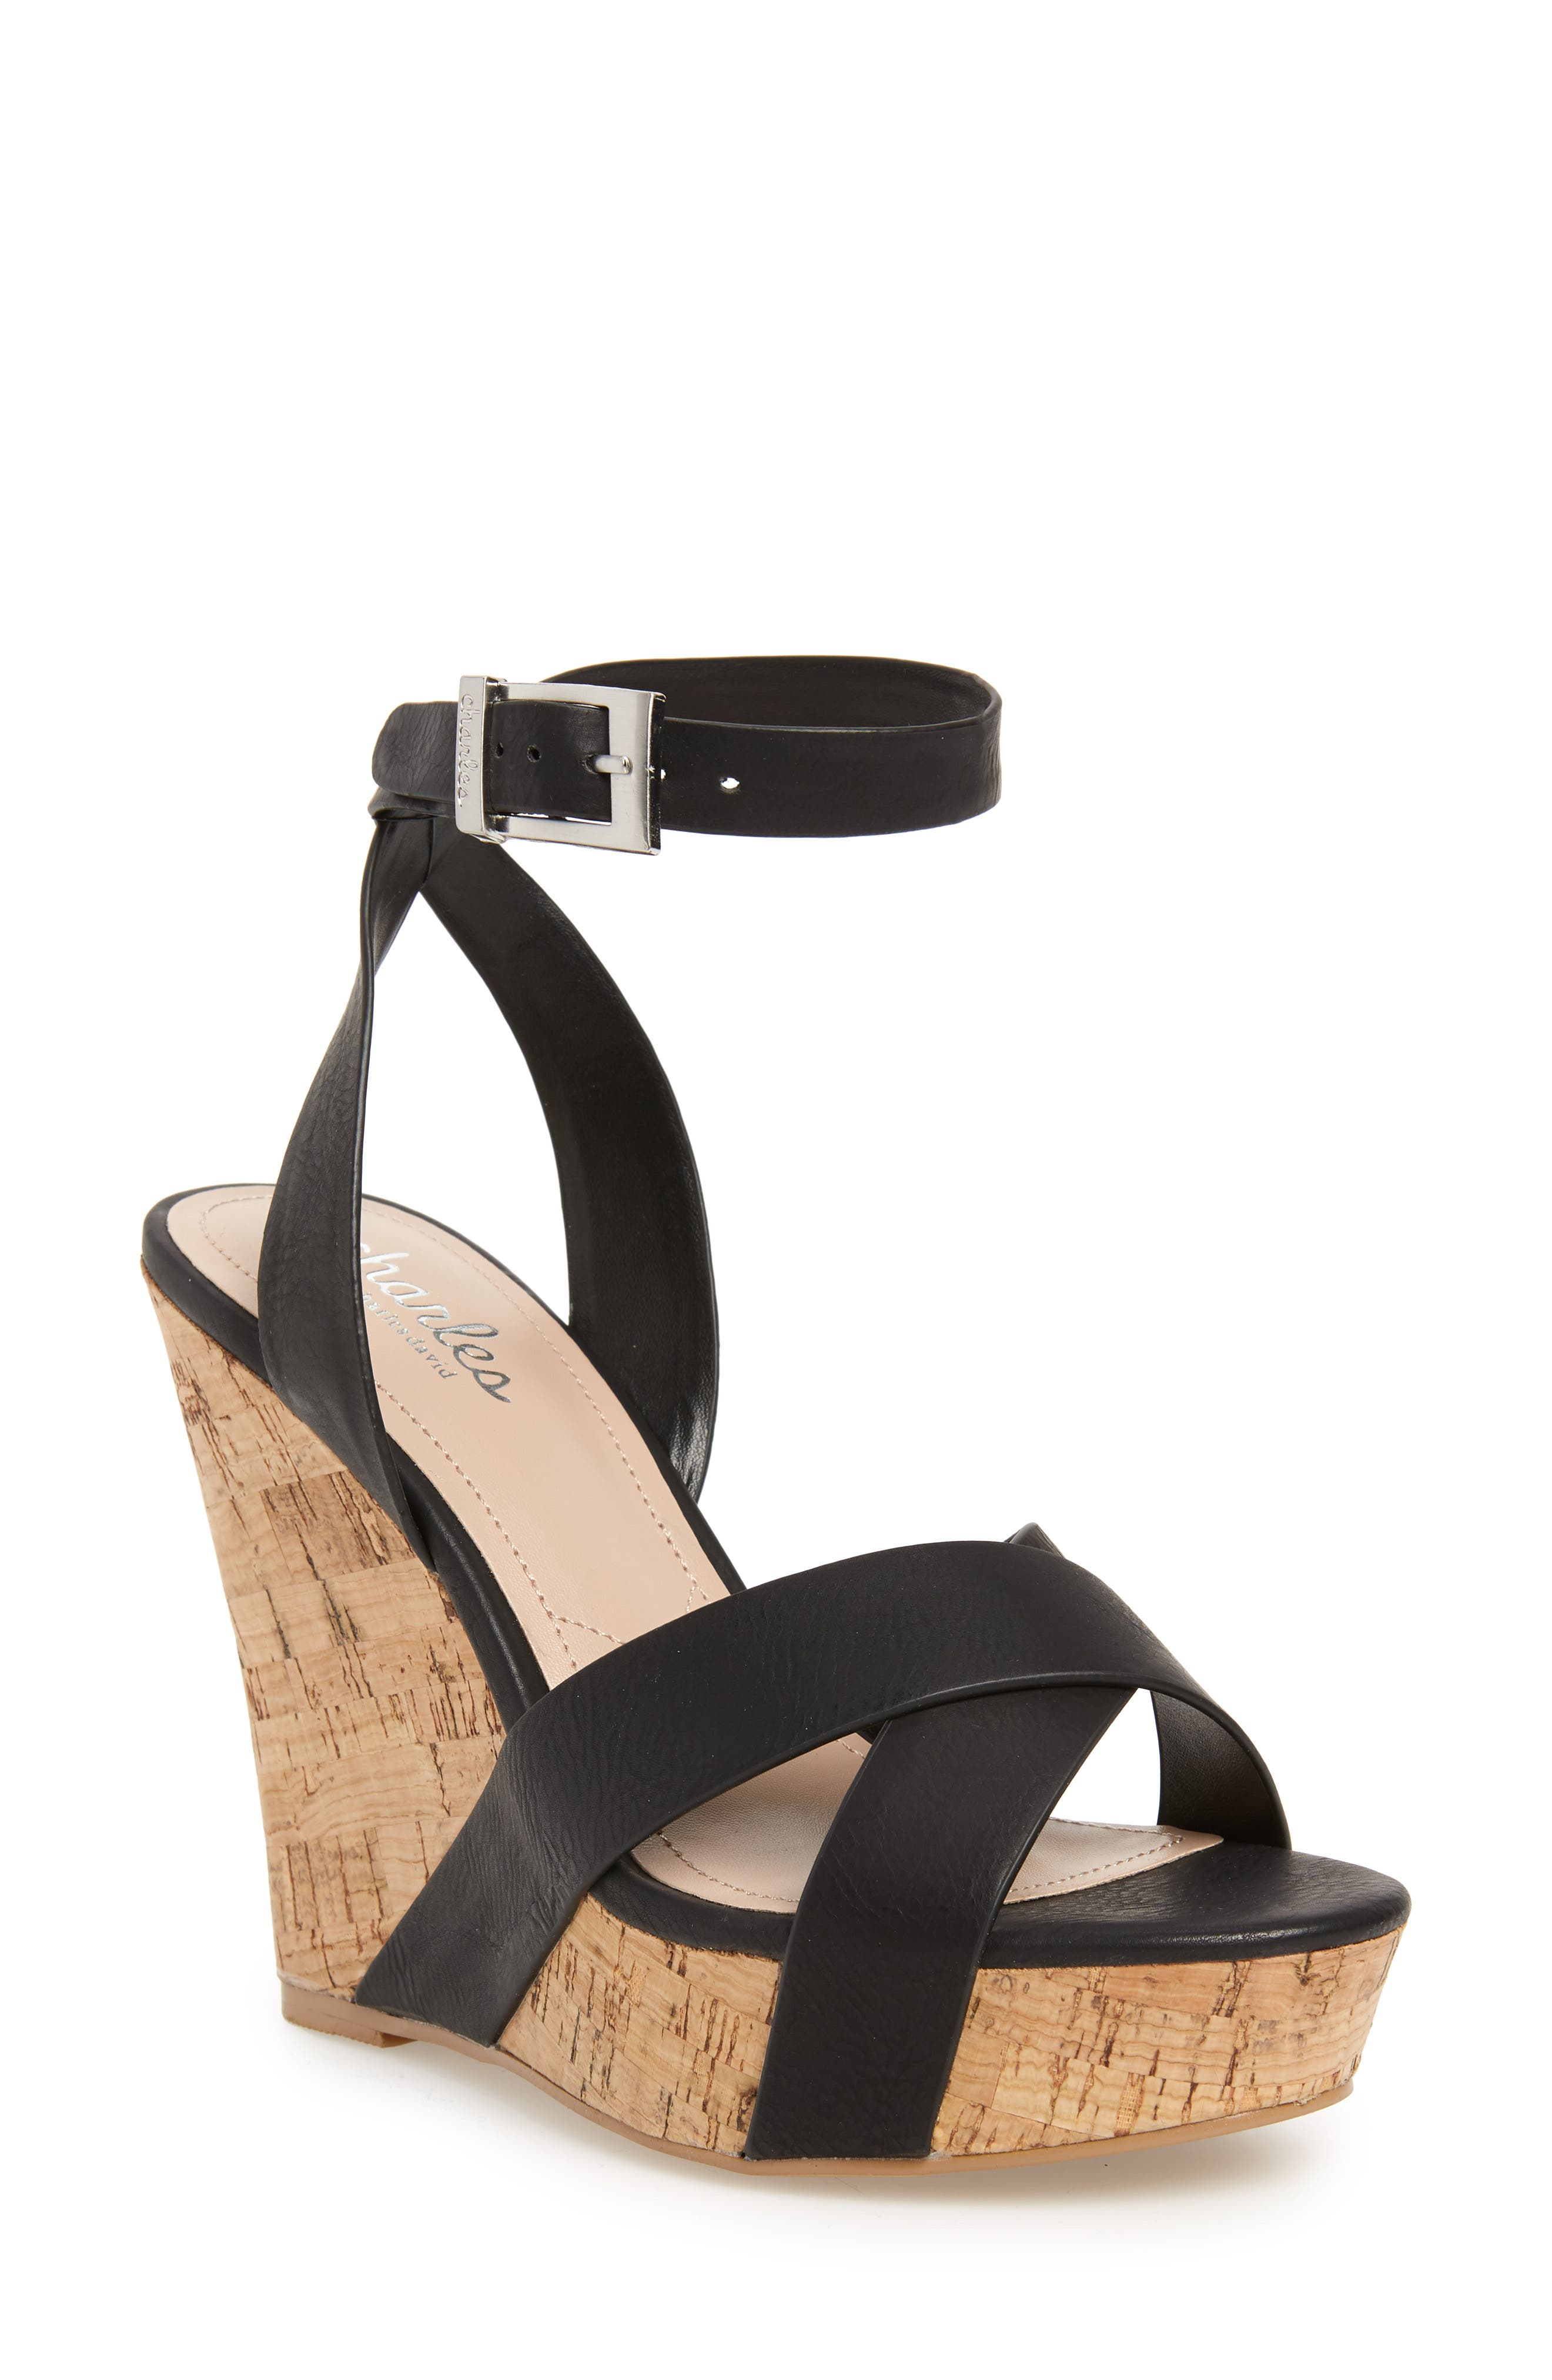 CHARLES BY CHARLES DAVID Aleck Platform Wedge Sandal, Main, color, BLACK FAUX LEATHER